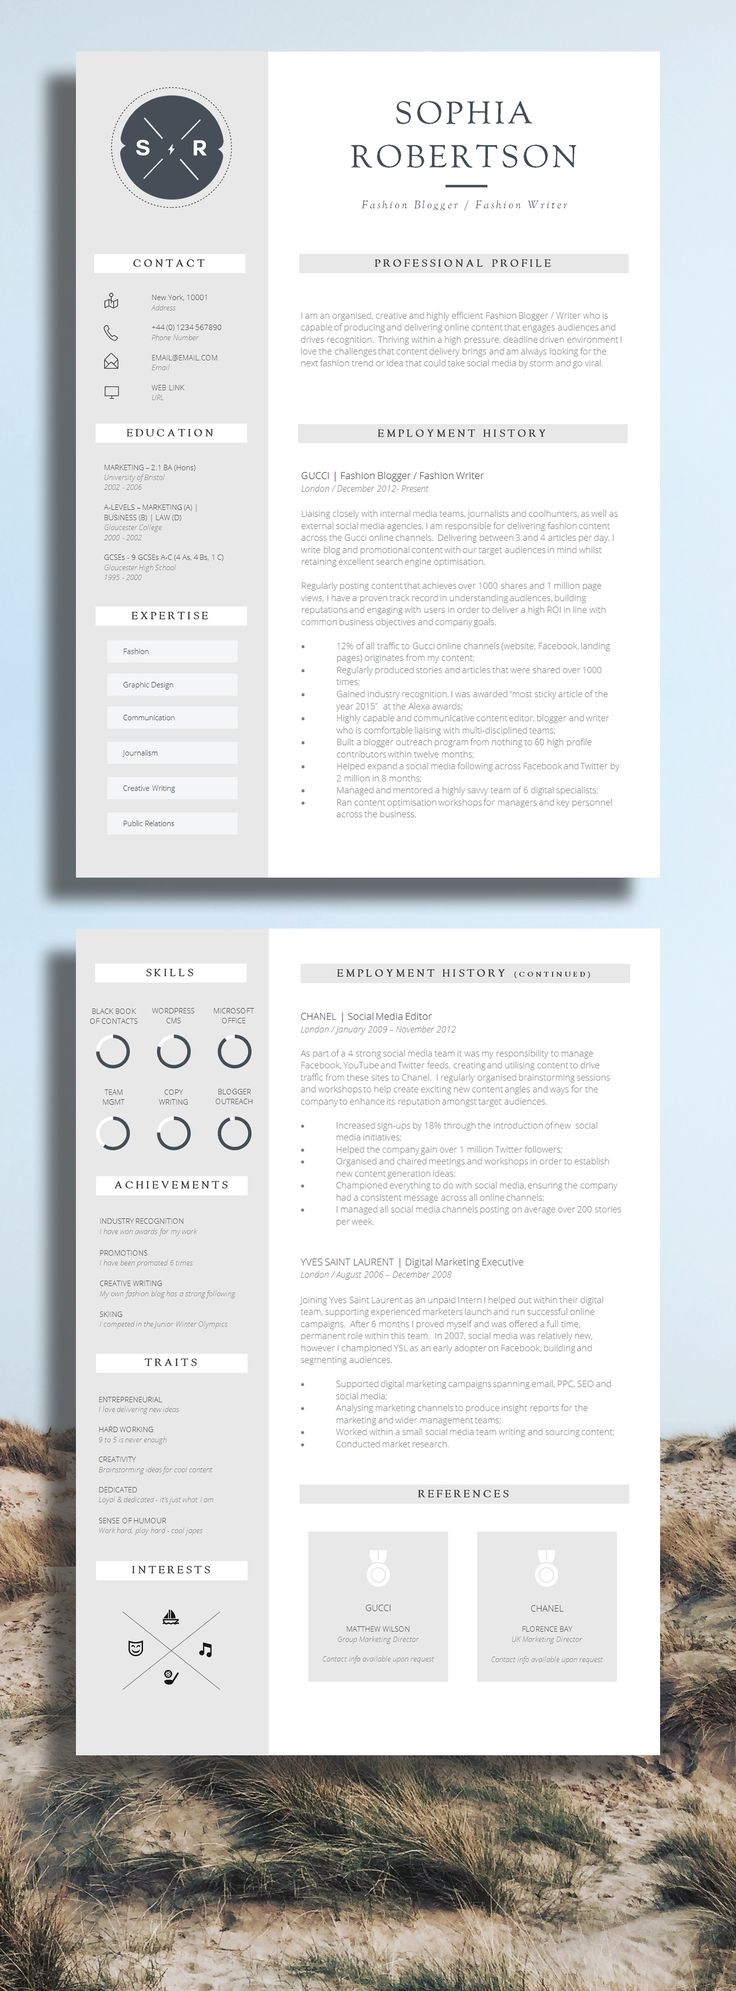 best ideas about creative cv template creative creative resume template teacher resume creative cv design cover letter cv guide for ms word word resume chancery